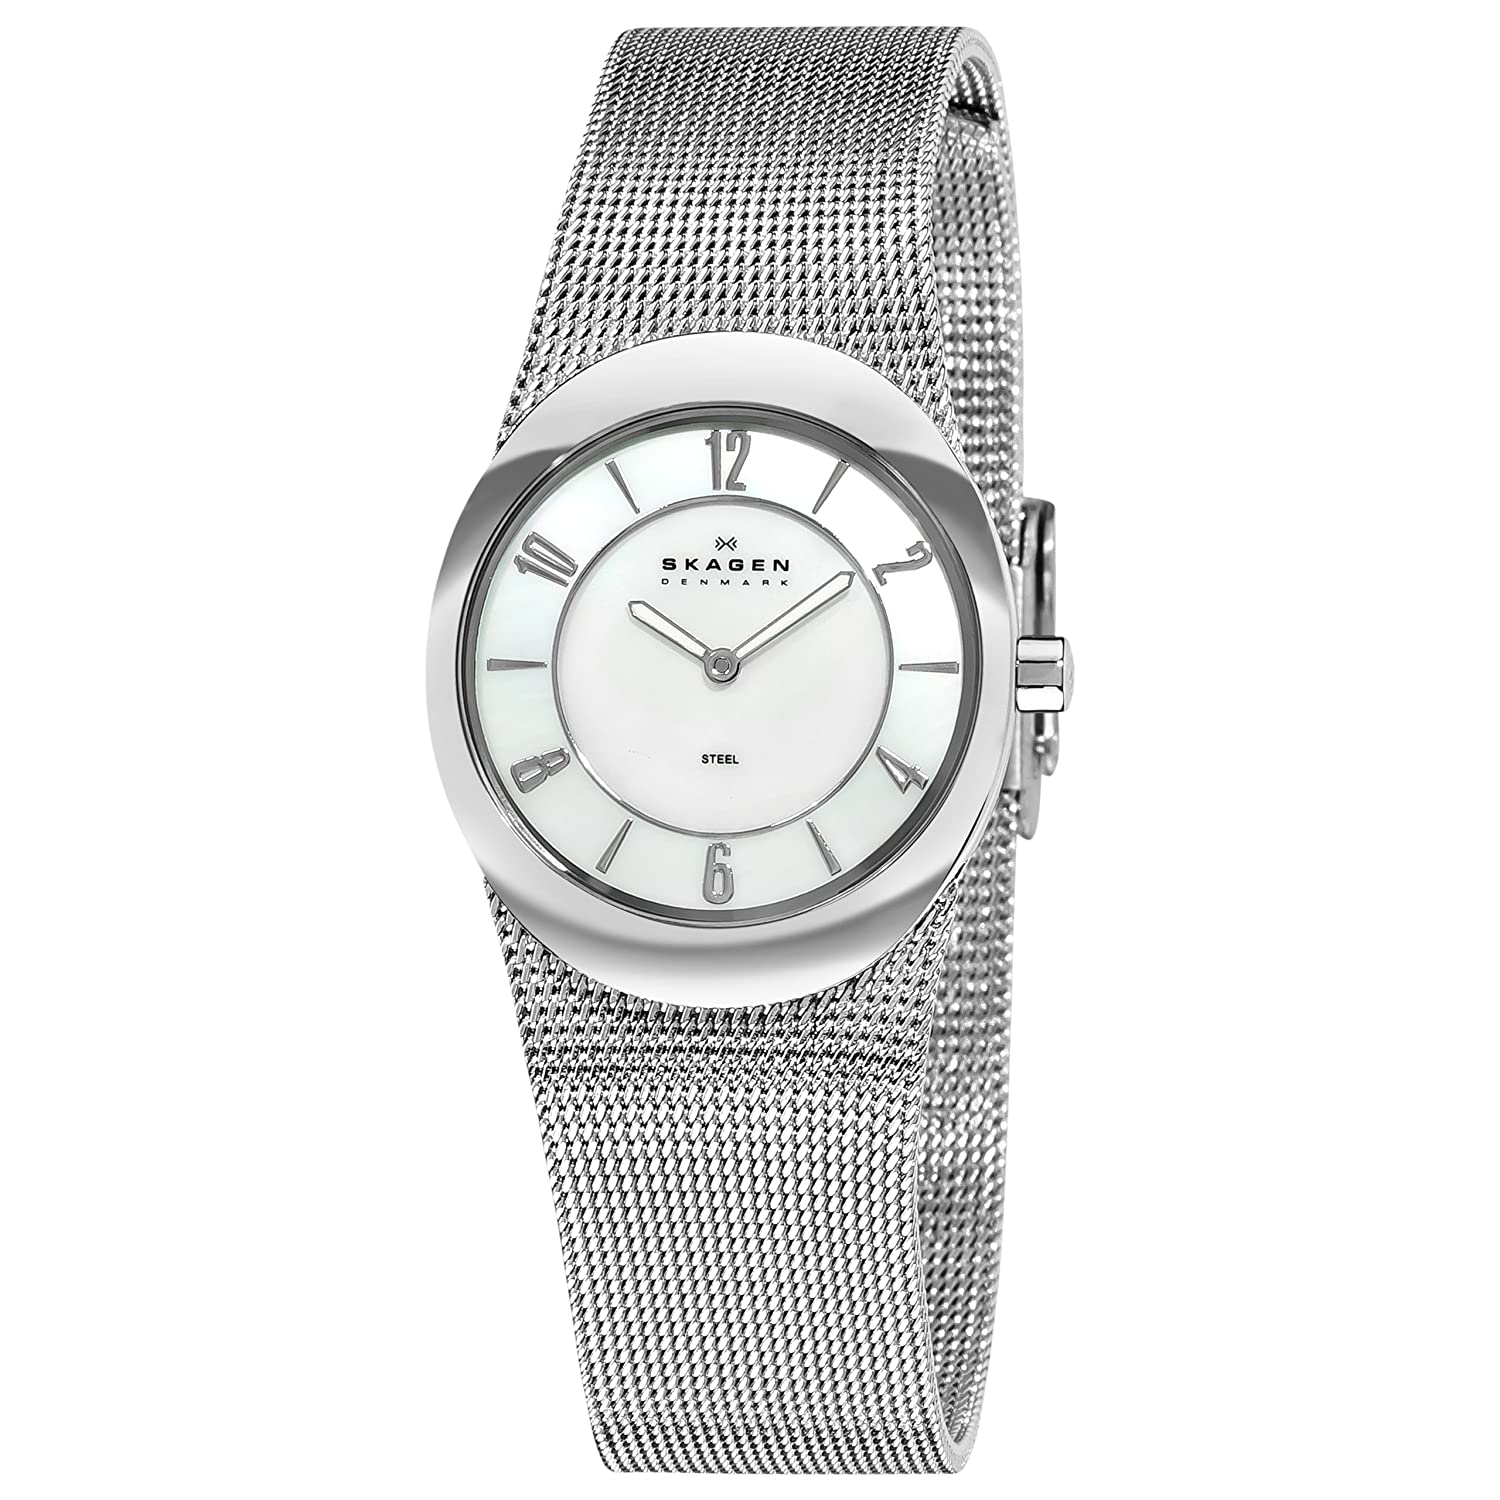 Skagen Women's 564XSSSMP Steel Mother-Of-Pearl Arabic Numeral Dial Watch $65.00